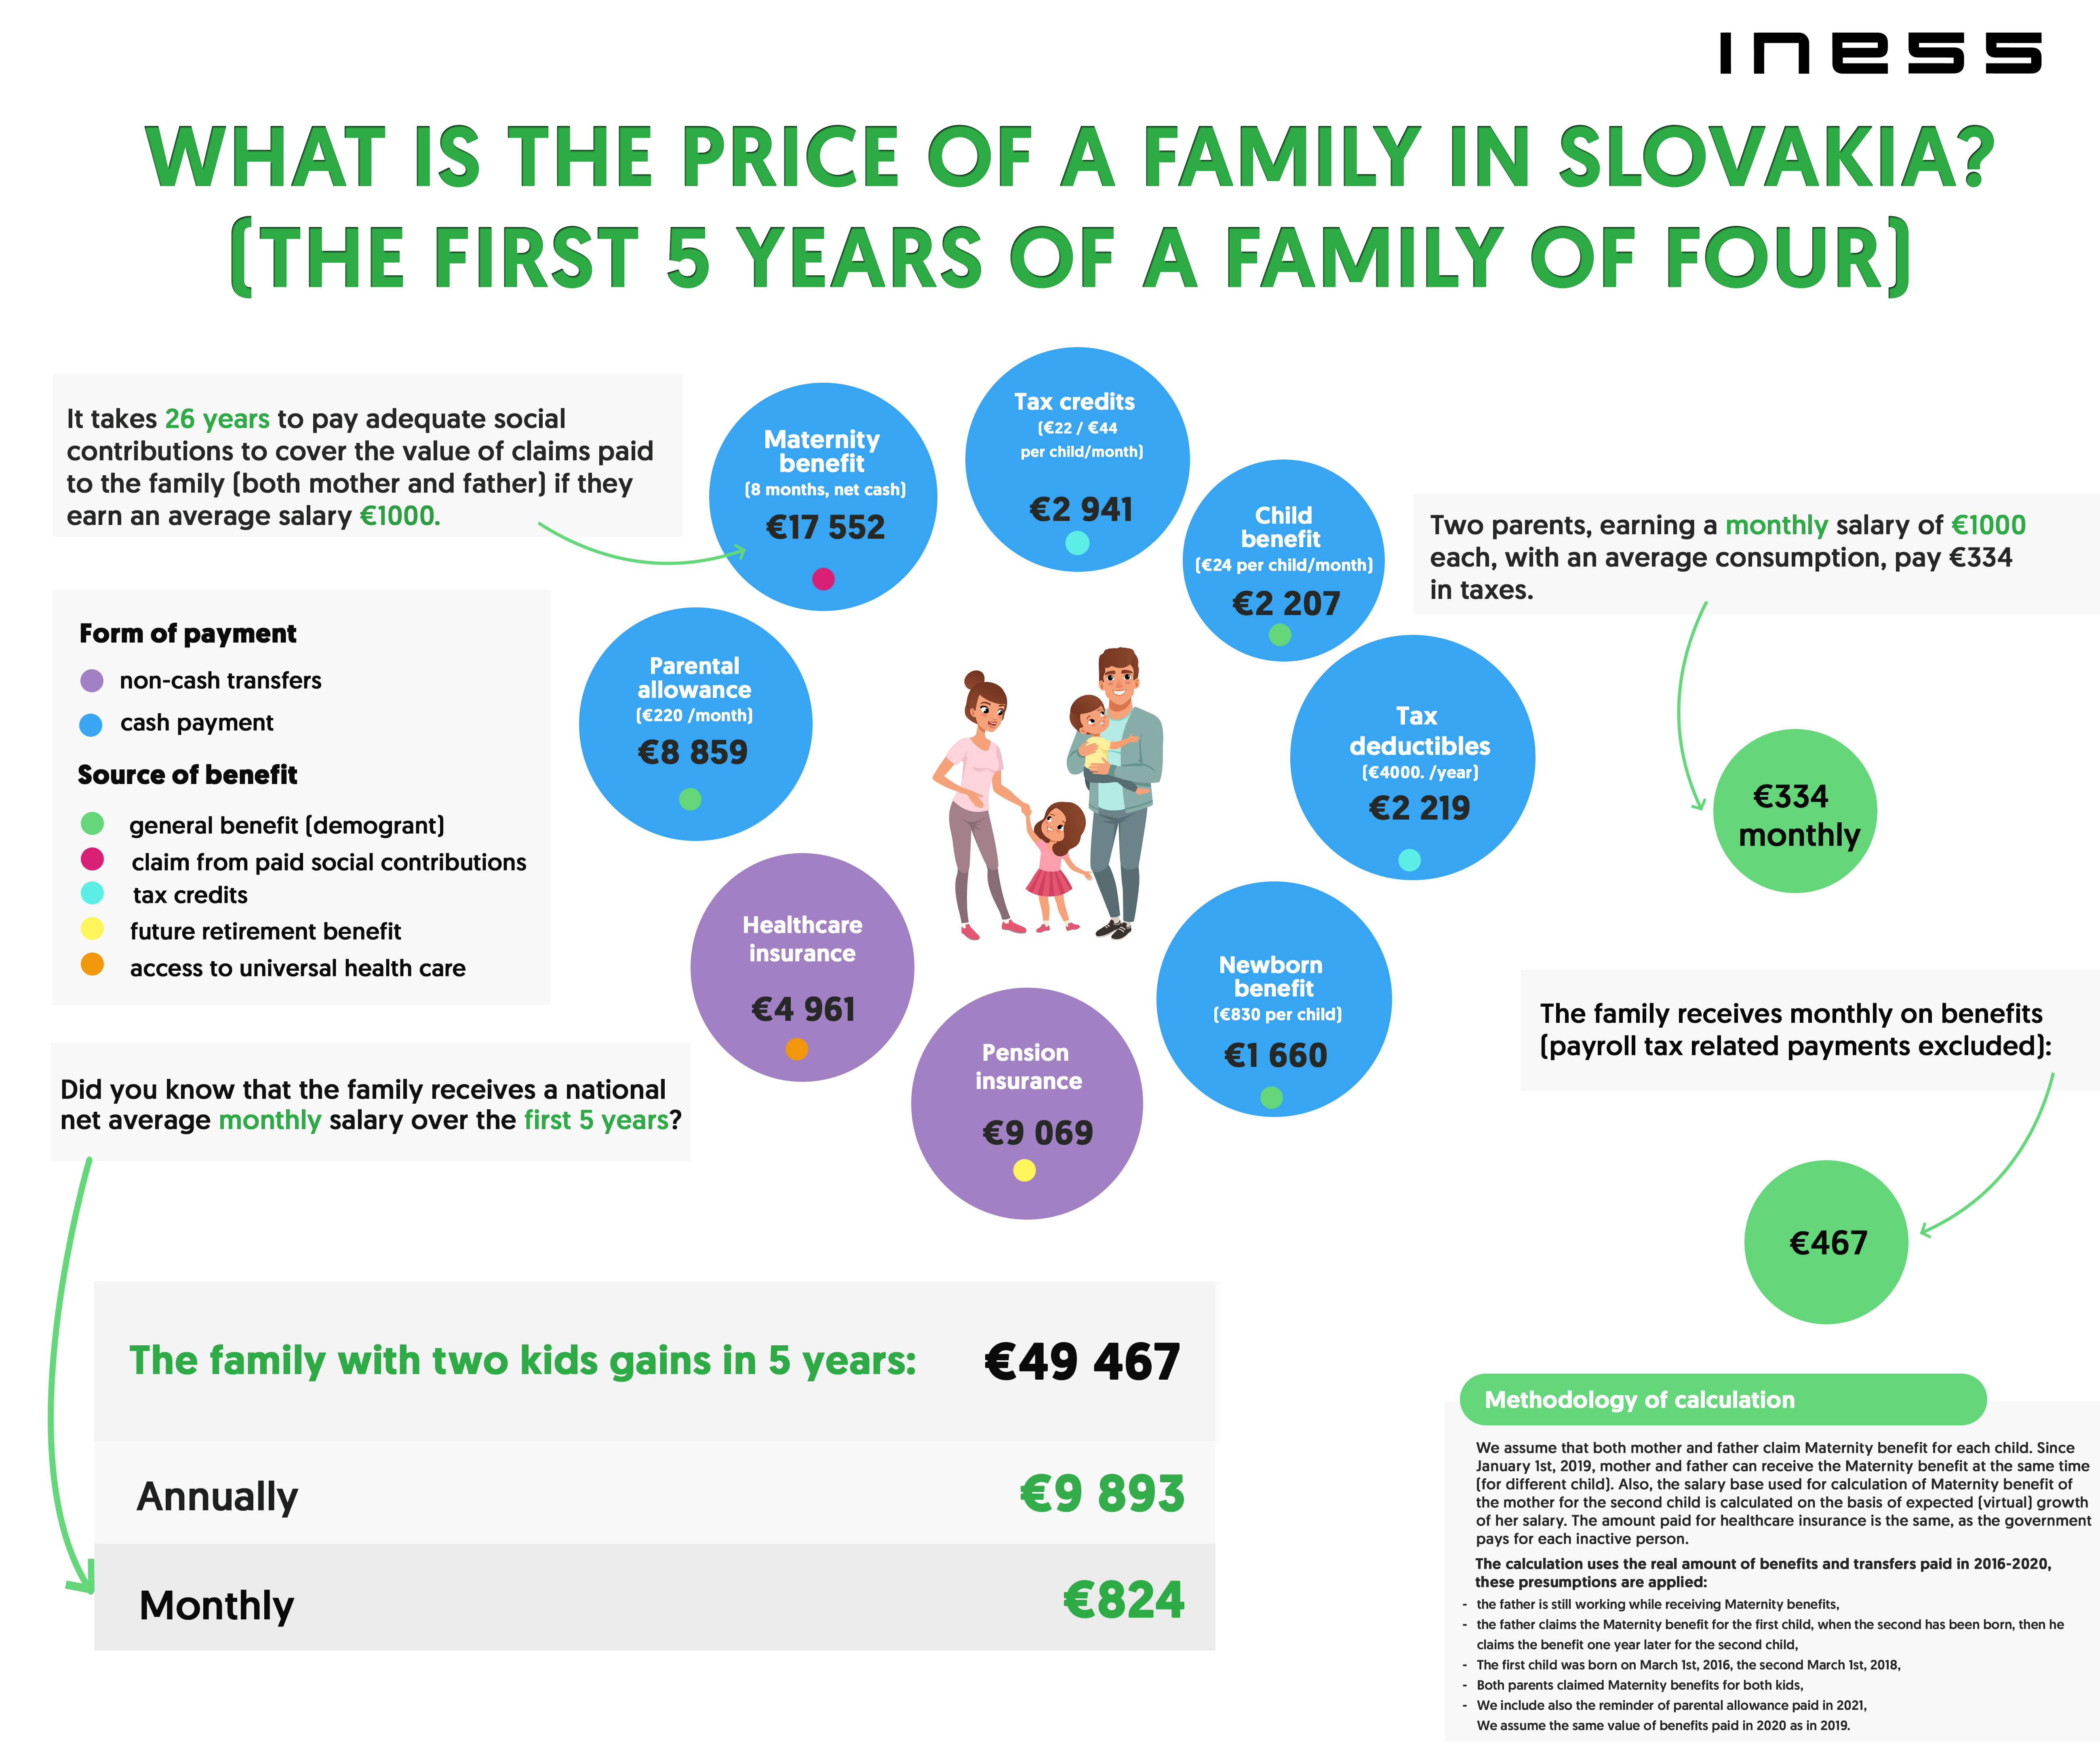 How Much Does Slovak Family Receive in Benefits? - 4Liberty eu